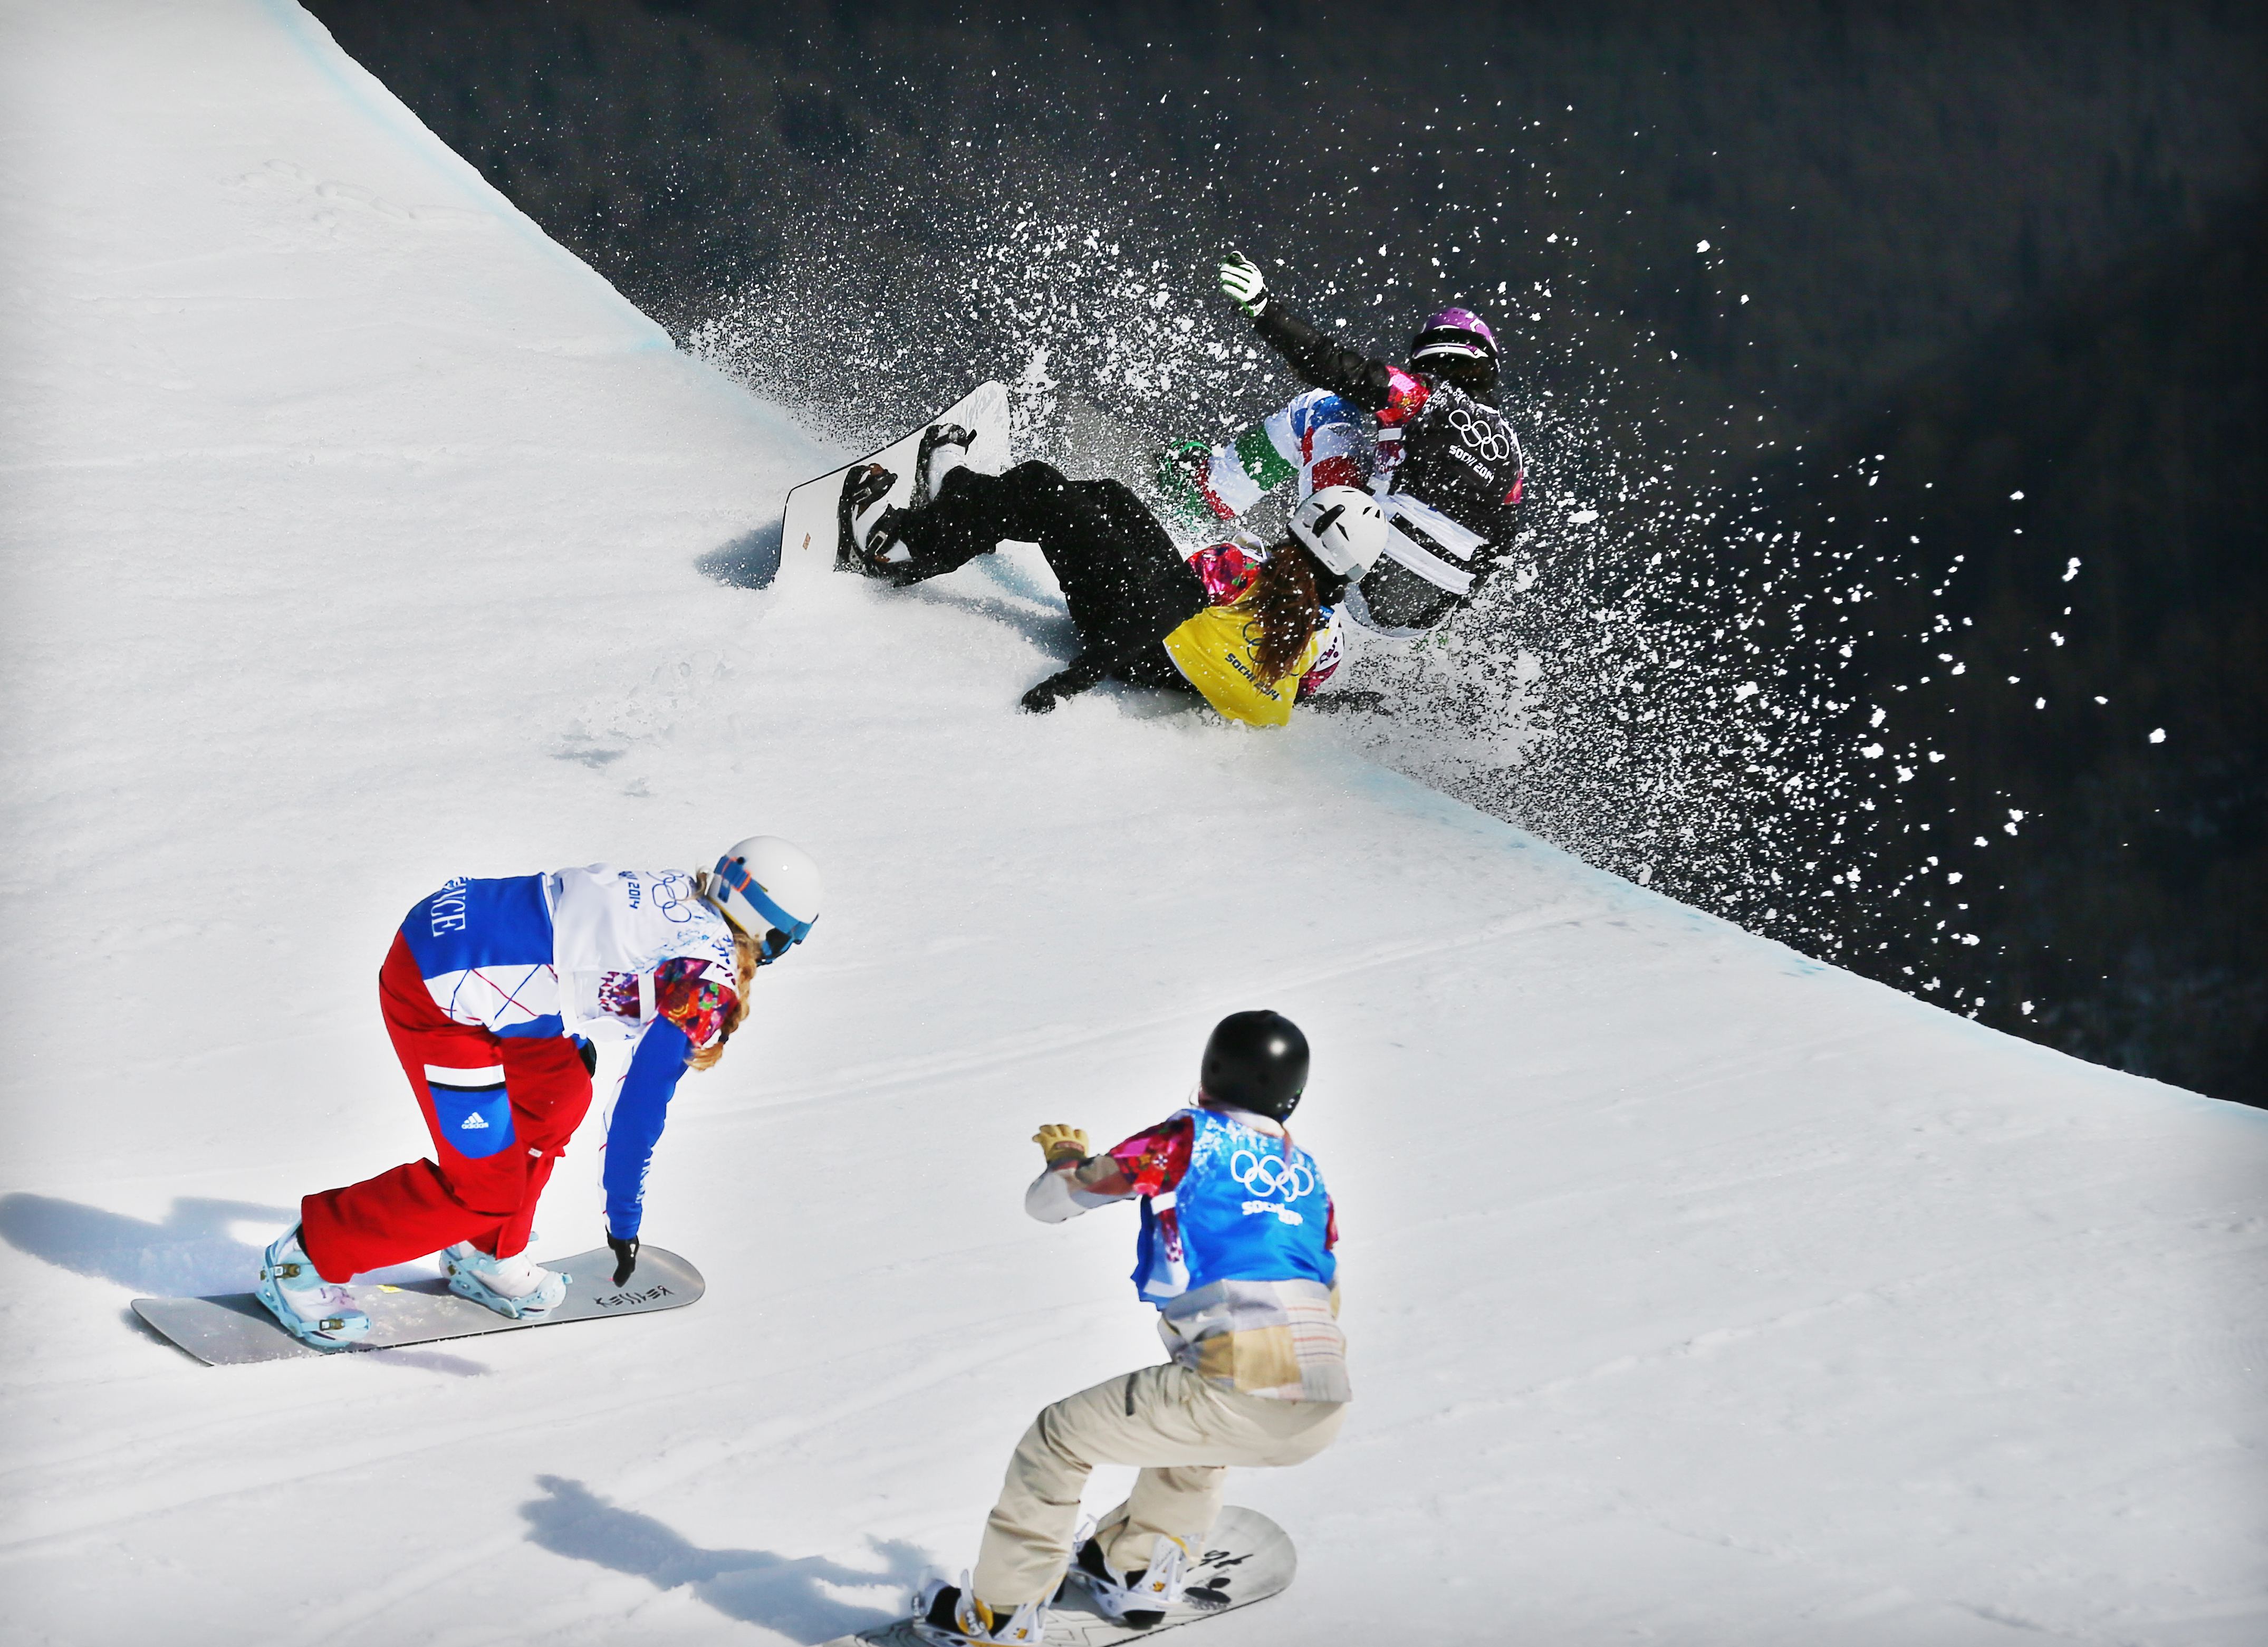 Michela Moioli of Italy (black bib) collides with Alexandra Jekova of Bulgaria (yellow) in front of Chloe Trespeuch of France (white) and Faye Gulini of the USA (blue) during the Women's Snowboard Cross final at Rosa Khutor Extreme Park at the Sochi 2014 Olympic Games, Krasnaya Polyana, Russia, Feb. 16, 2014.